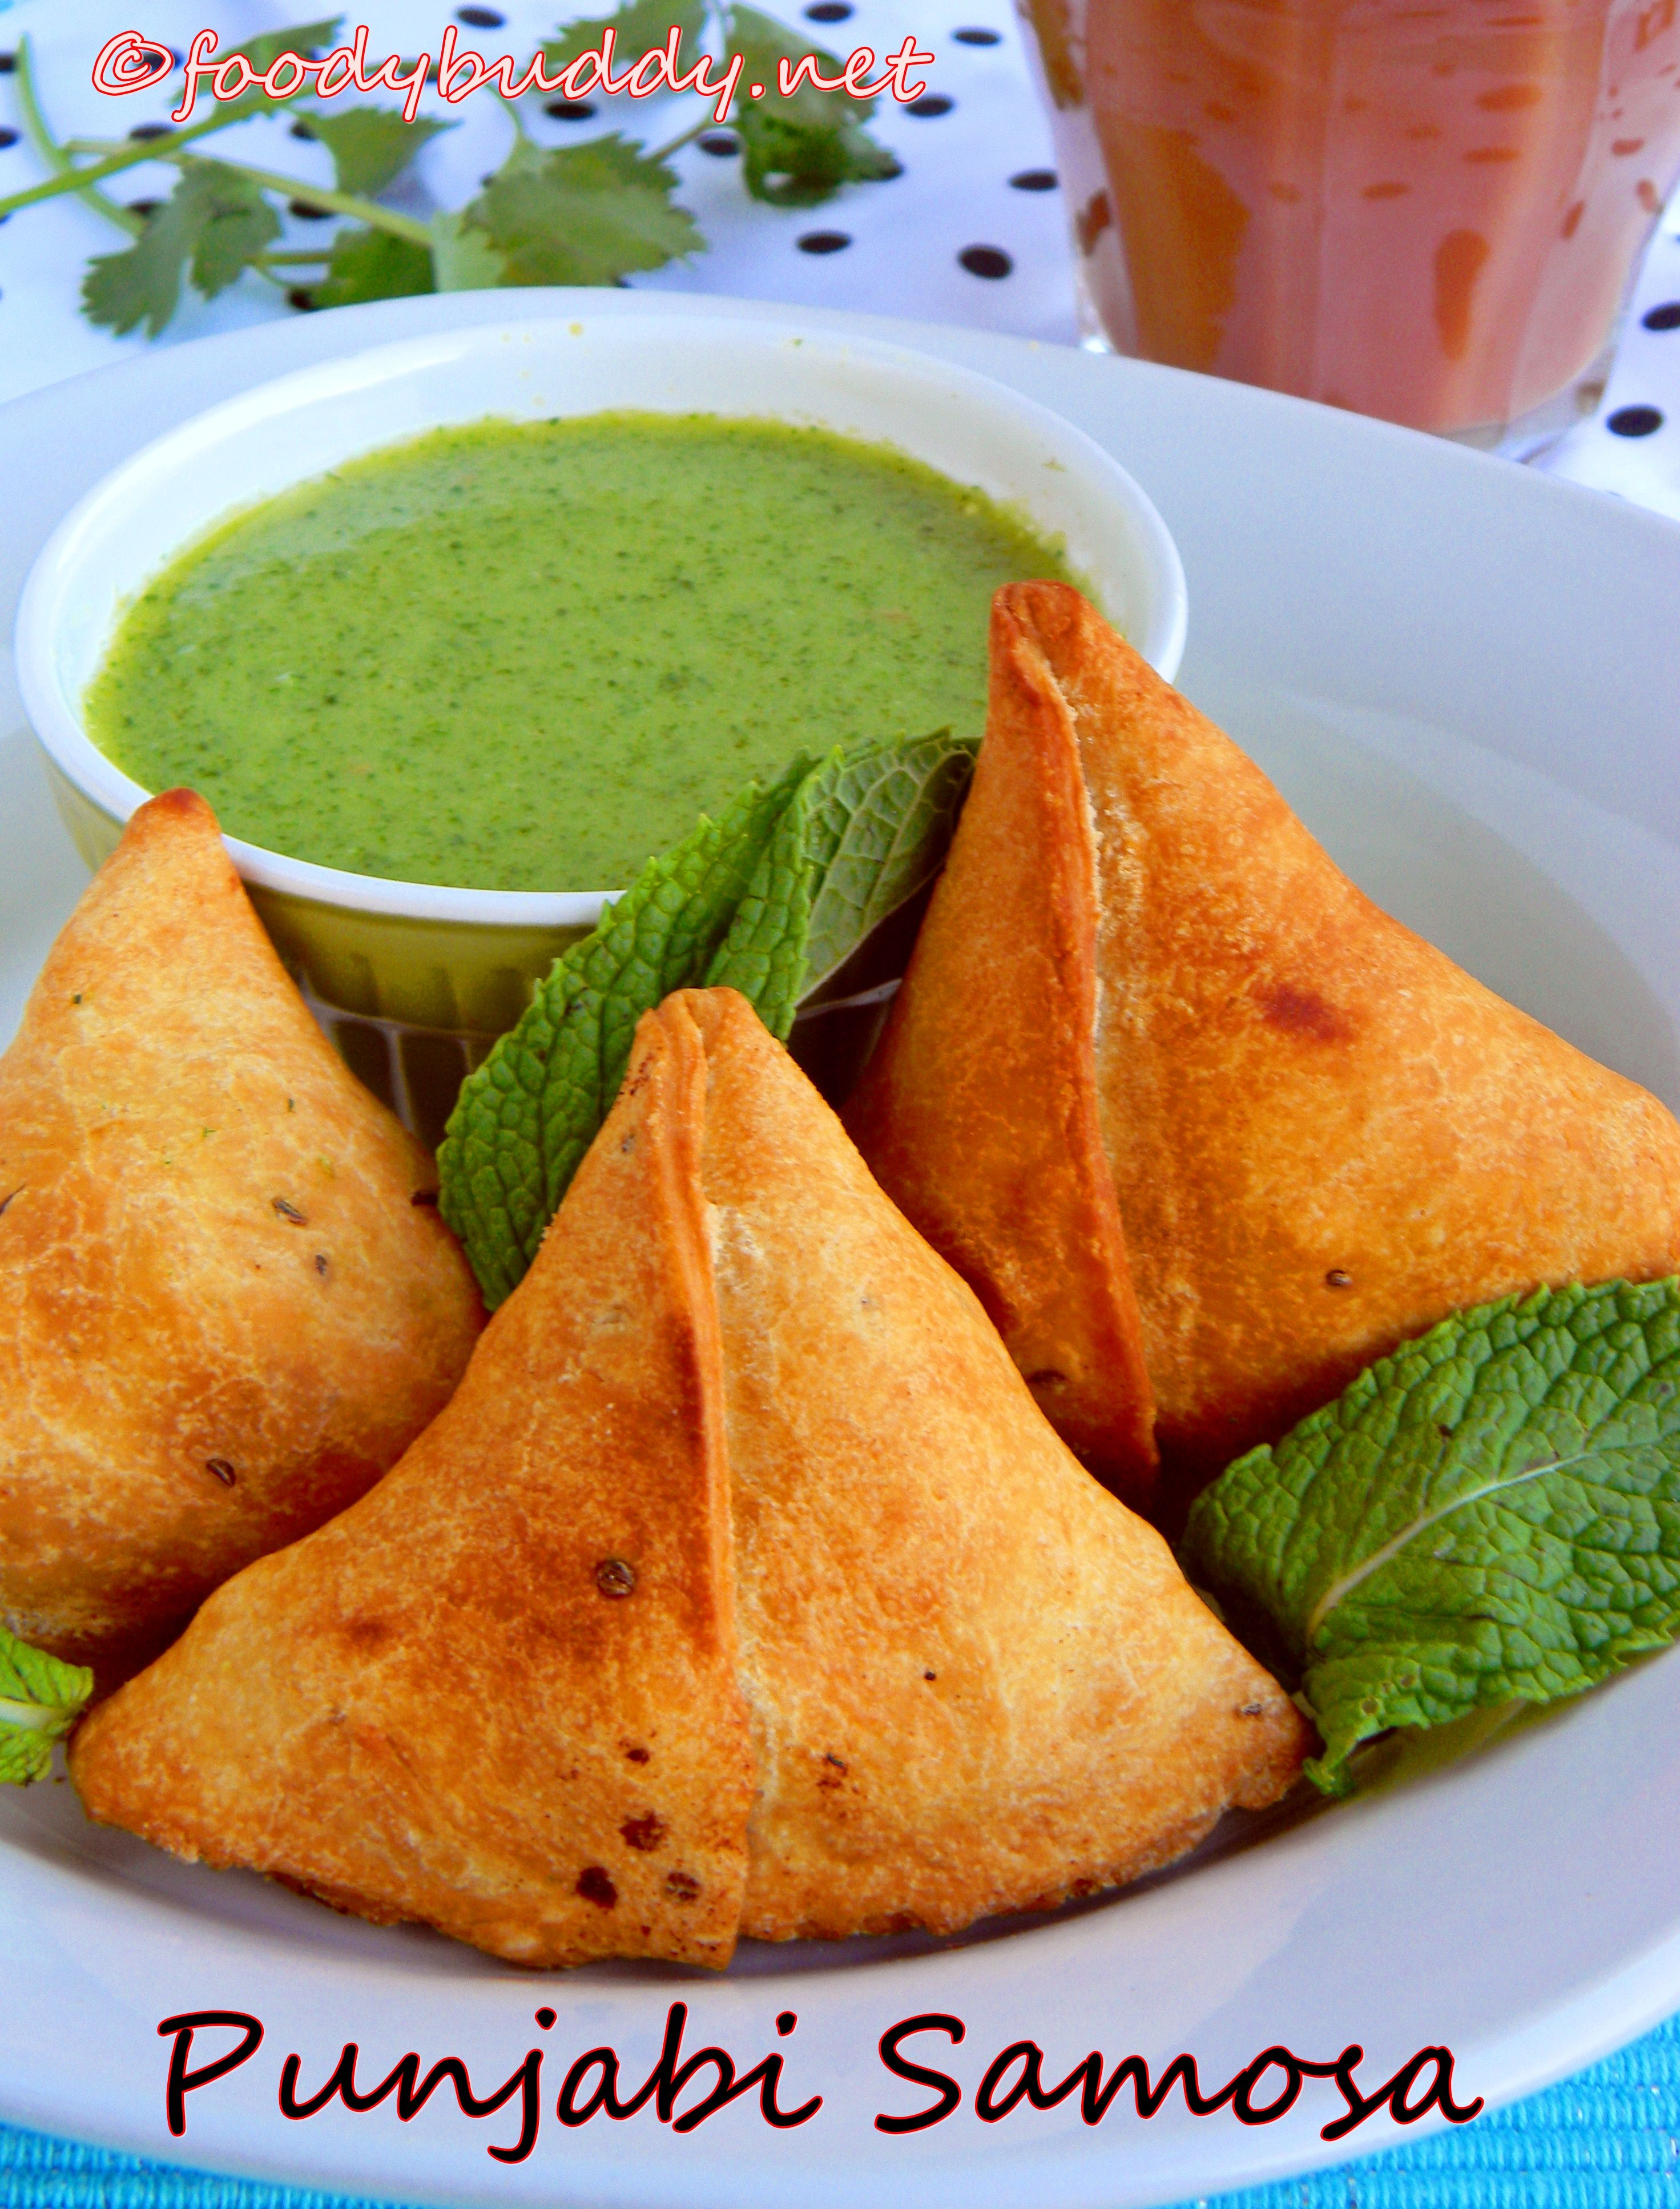 Samosa with potatoes and peas an indian pastry excellent aloo mutter samosa punjabi style with potatoes and peas an indian pastry excellent appetizers goes well with hot chai tea forumfinder Images